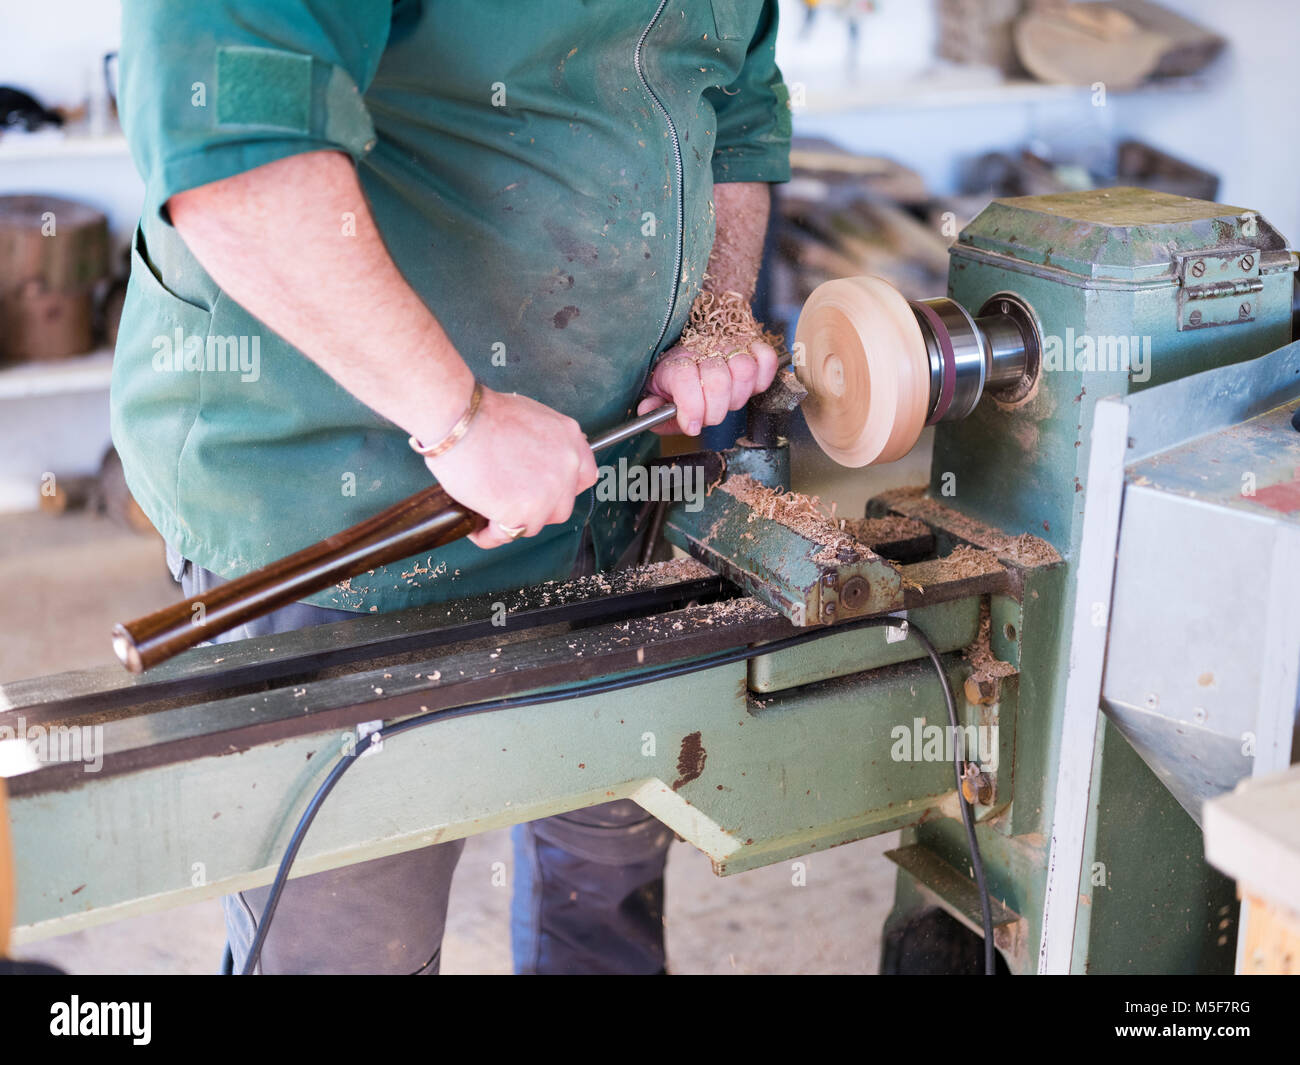 A woodworker, demonstrating spinning. Stock Photo